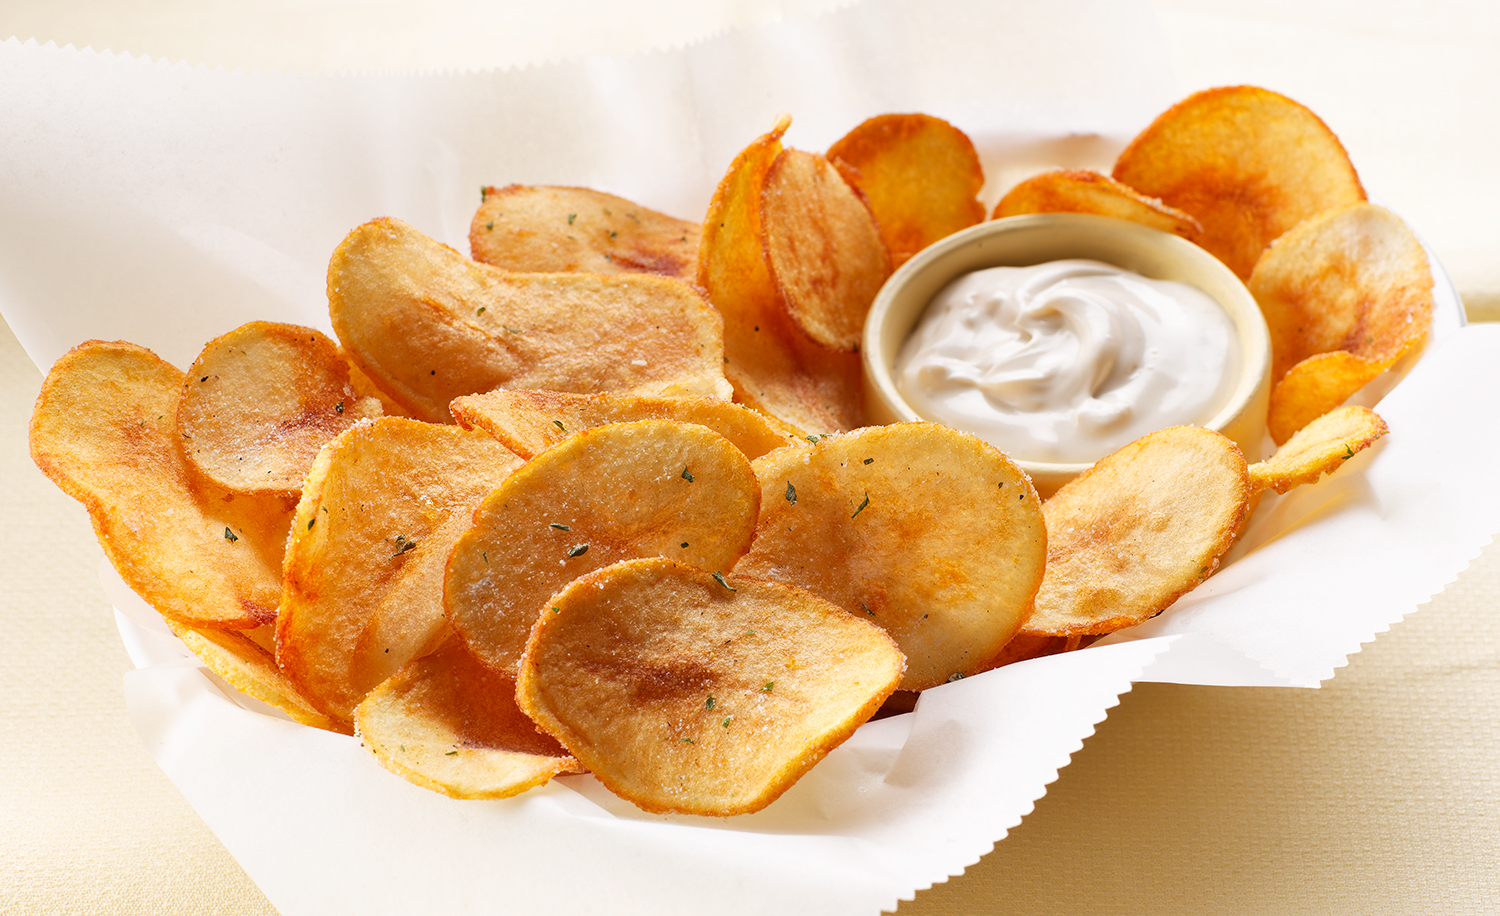 Homemade Potato Chips | Tony Kubat Photography